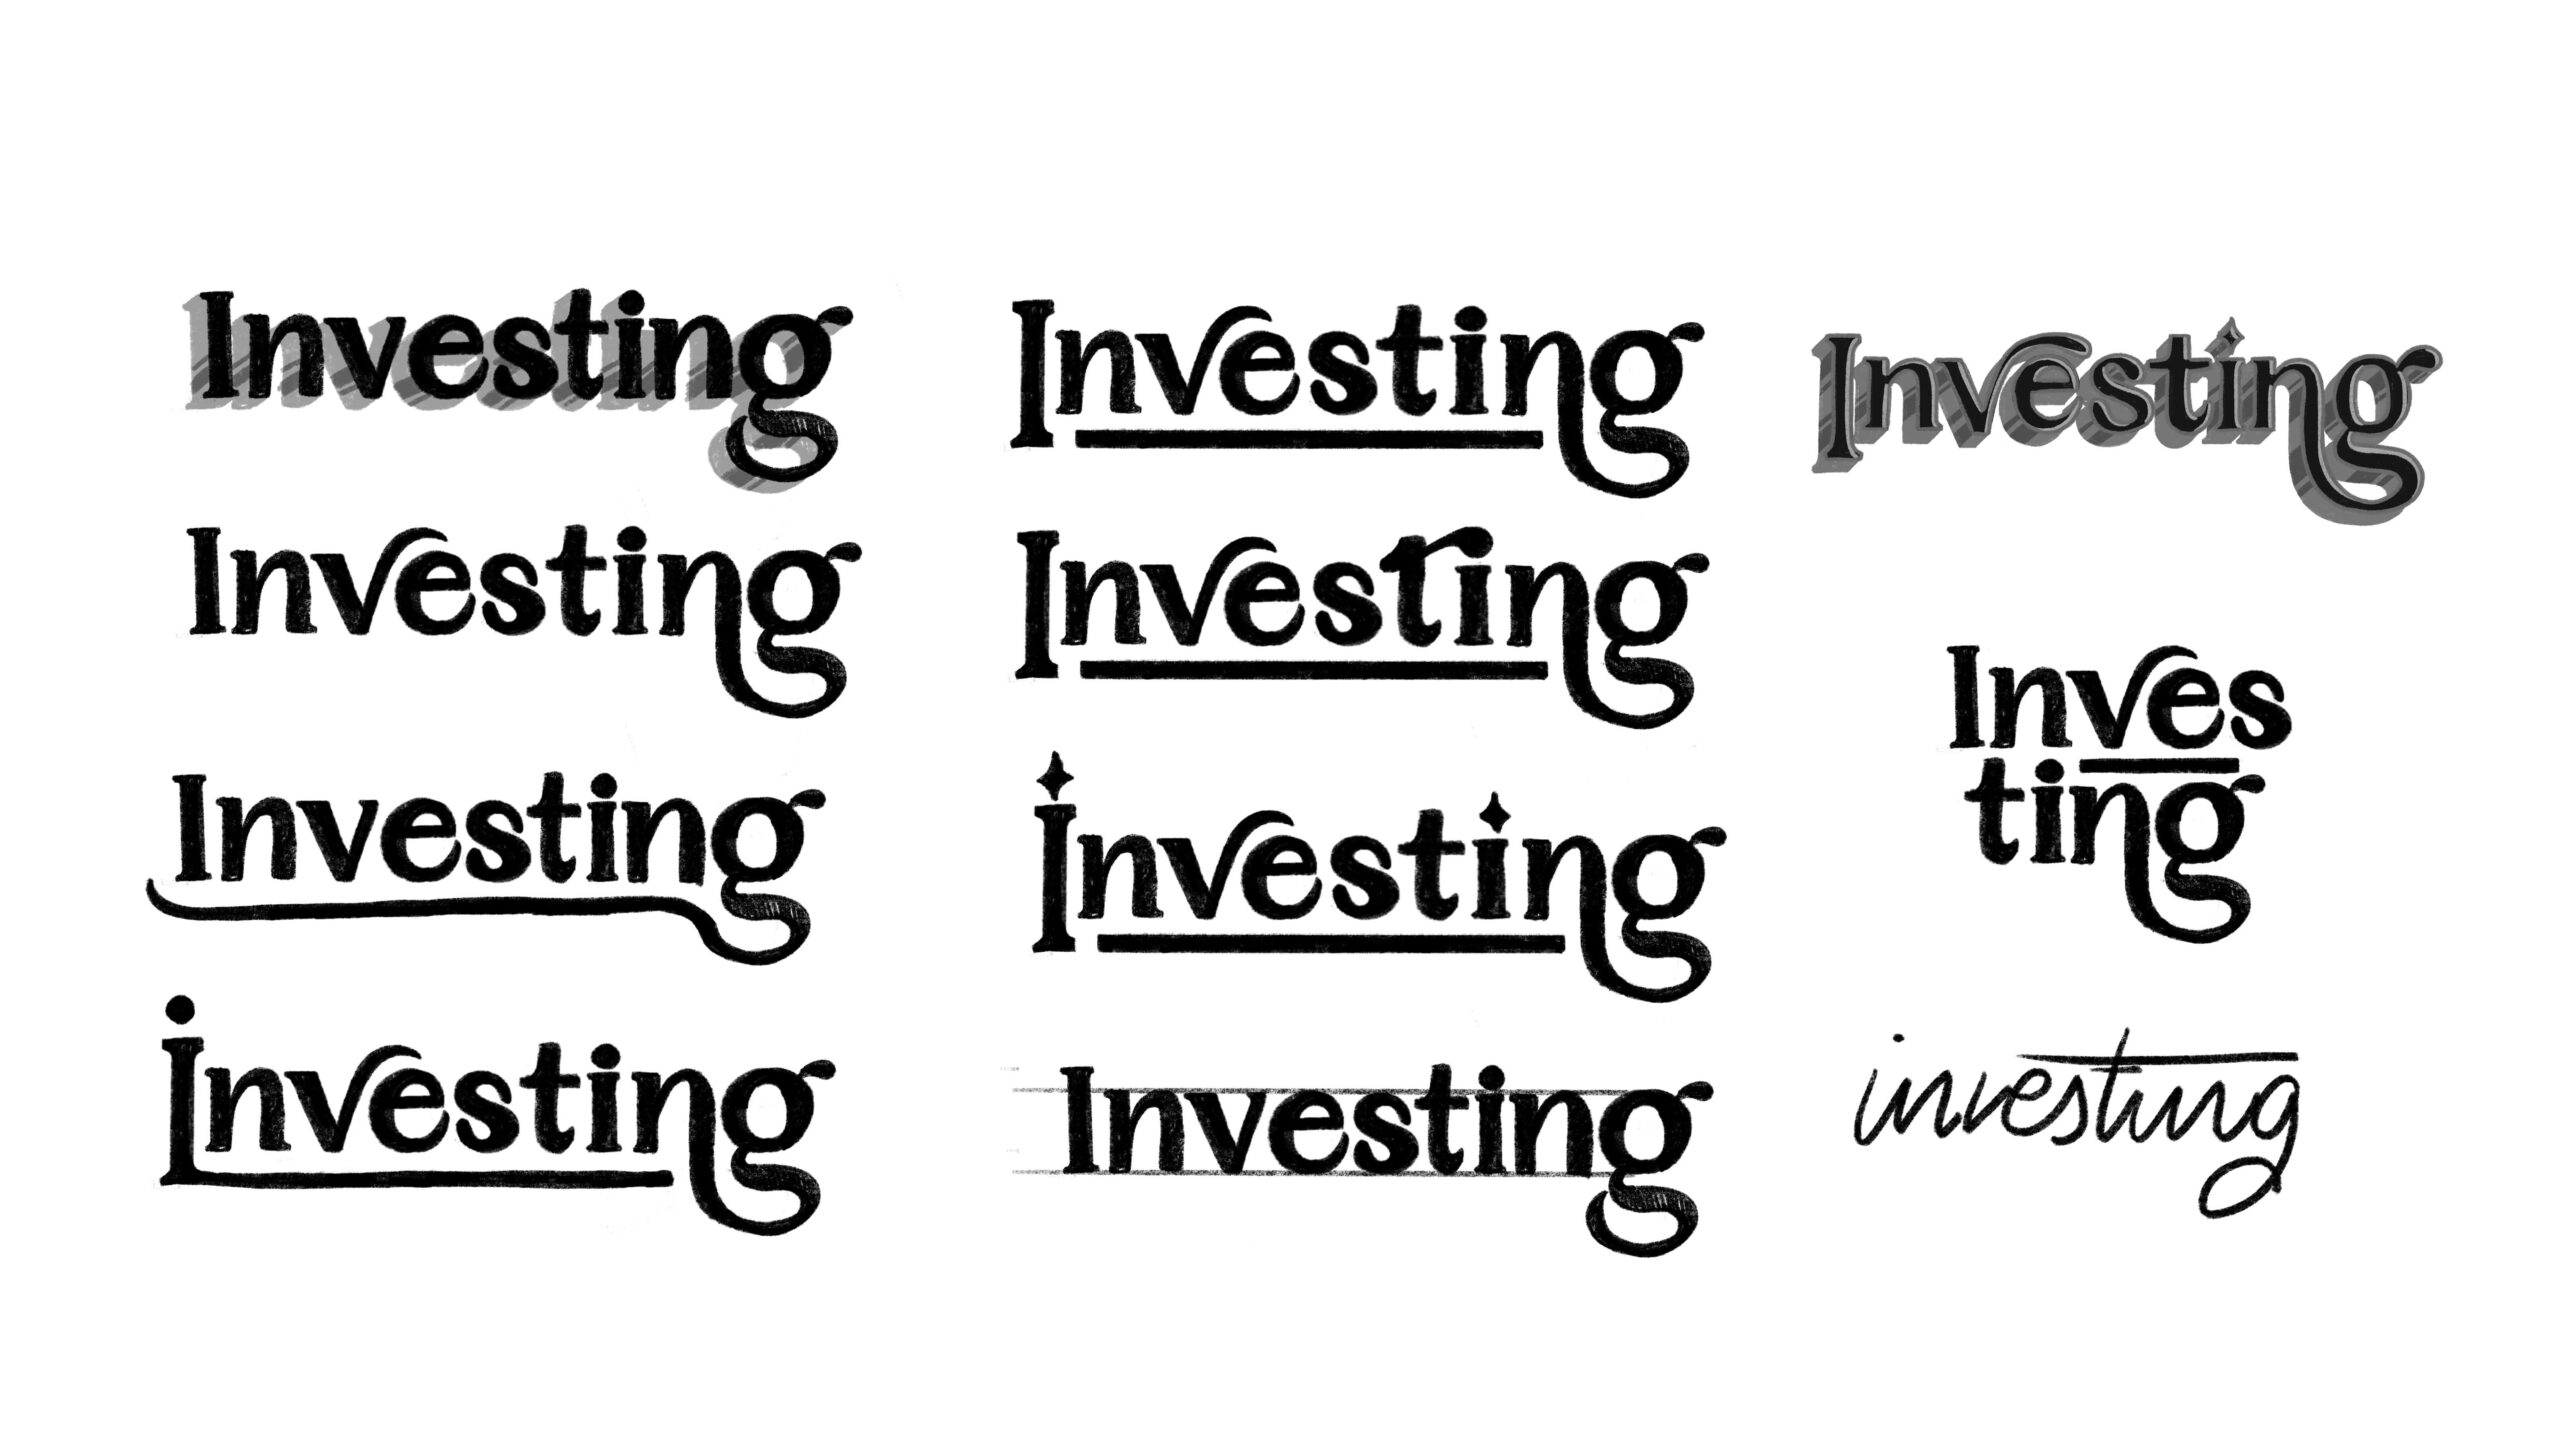 roofstudio_juni-learning_investing-02-1